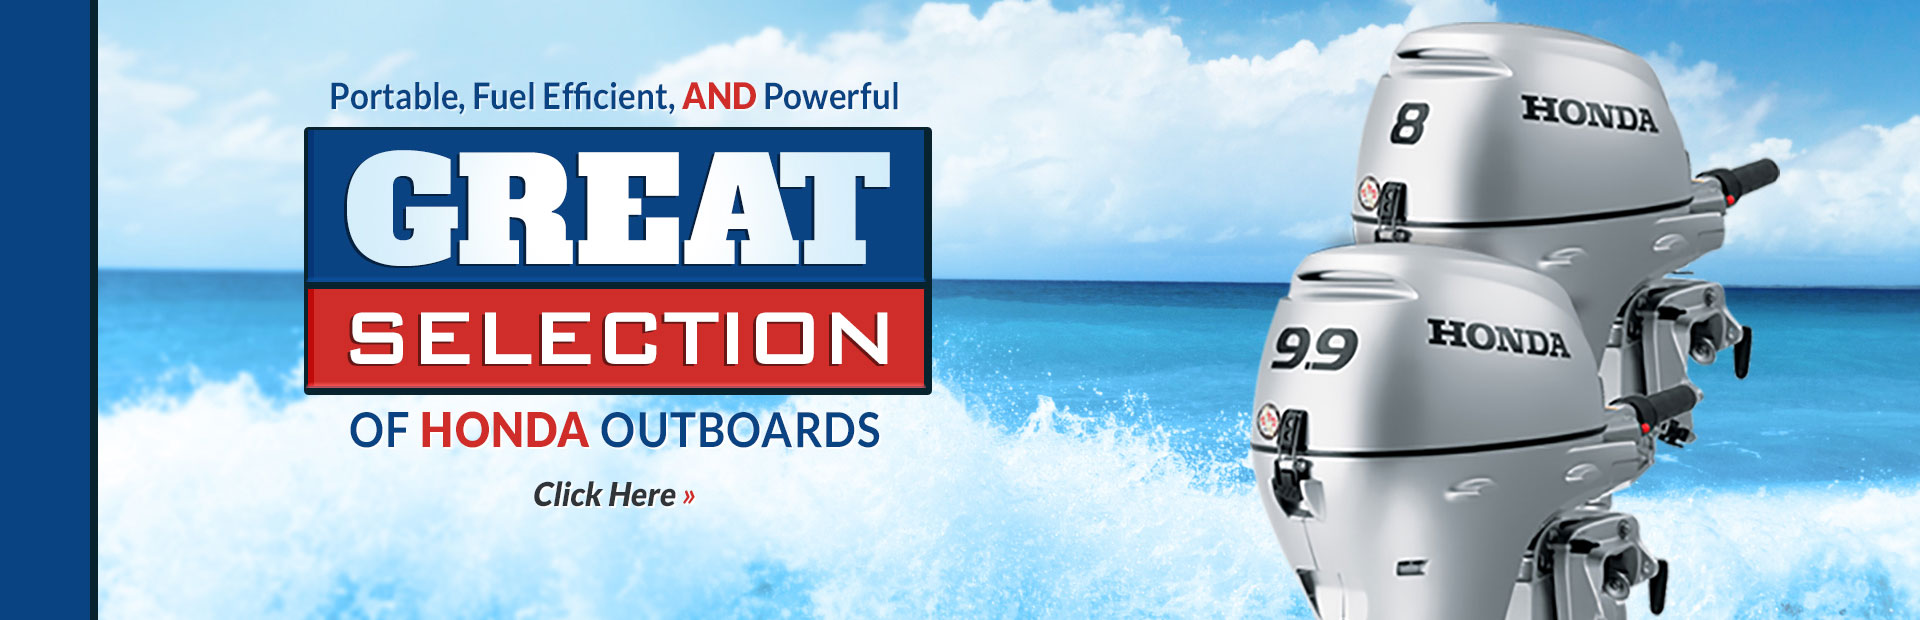 Great Selection of Honda Outboards: Click here to view the models.